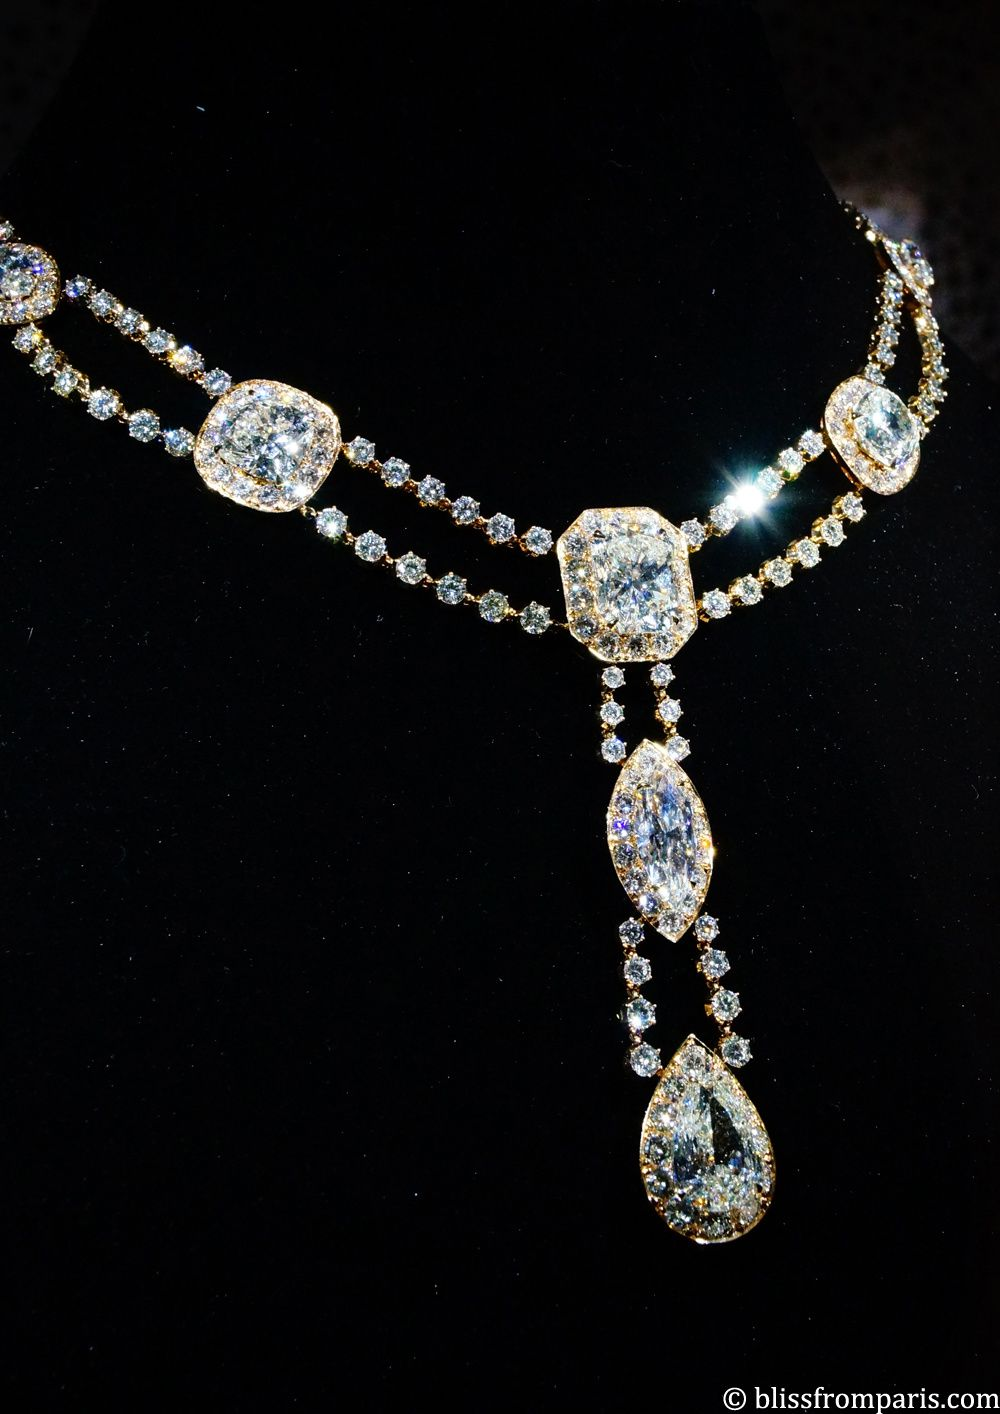 Collier d' H.Stern © Bliss from Paris